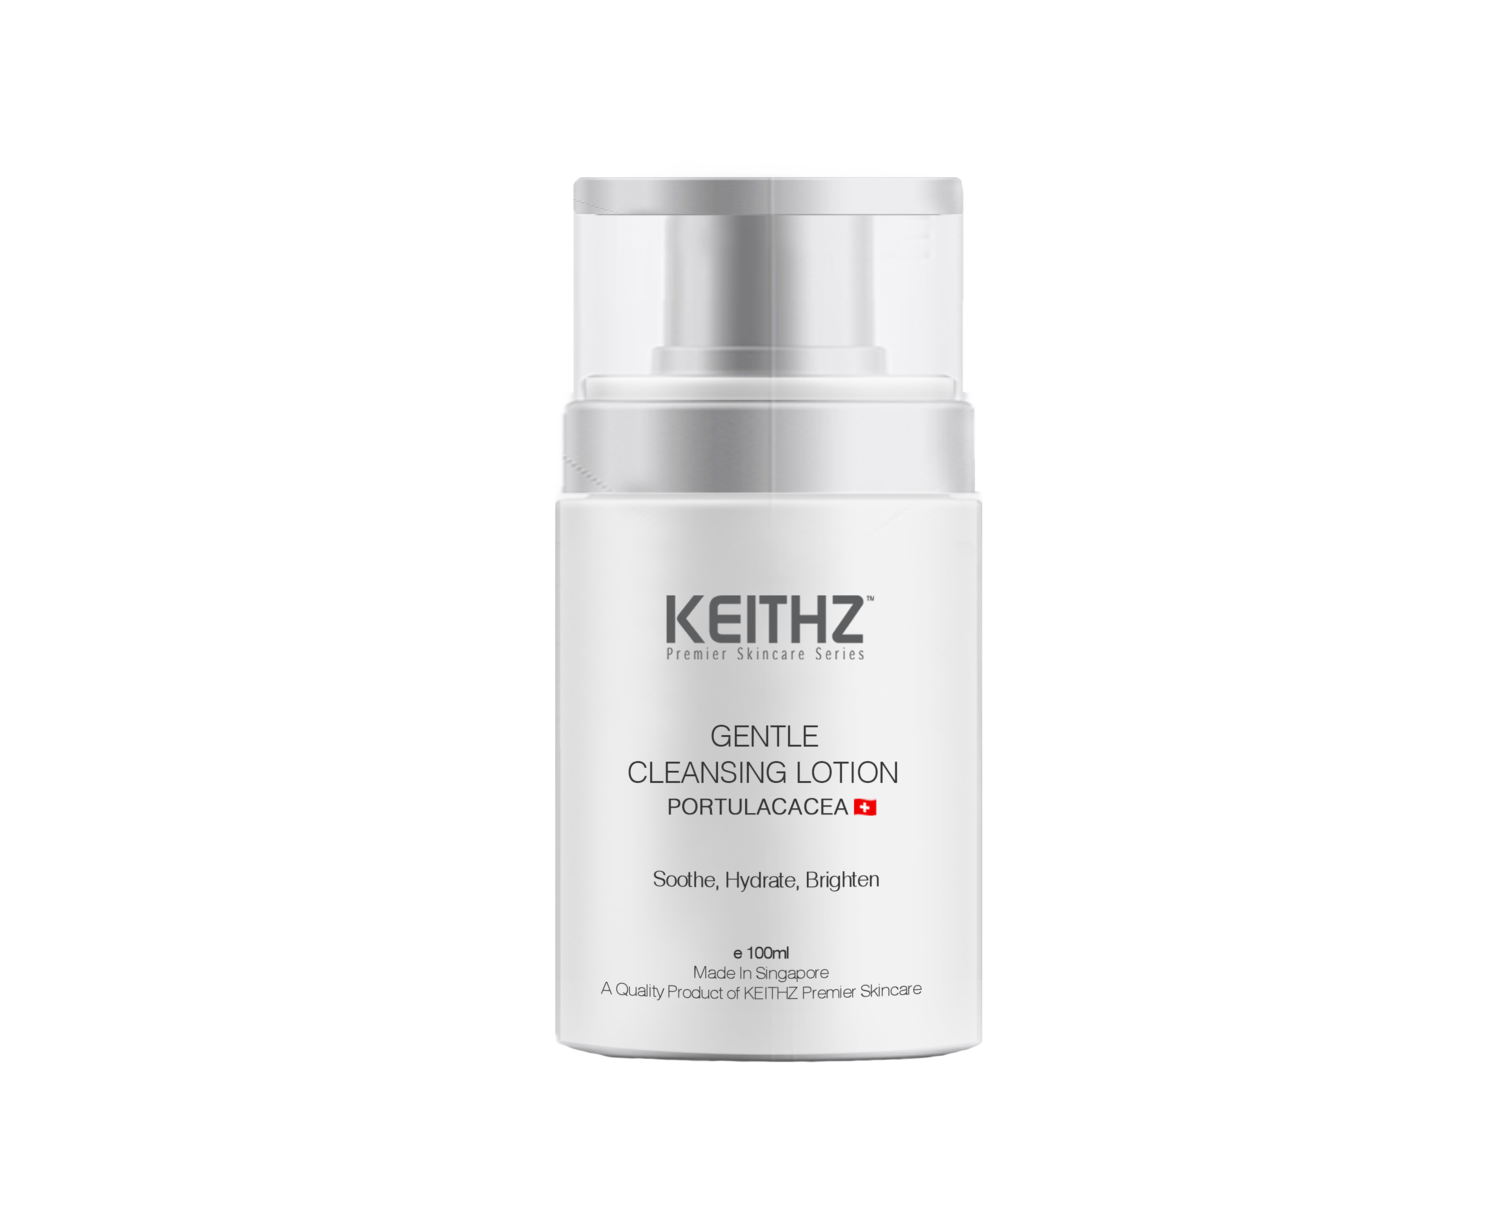 KEITHZ Gentle Cleansing Lotion - Portulacacea